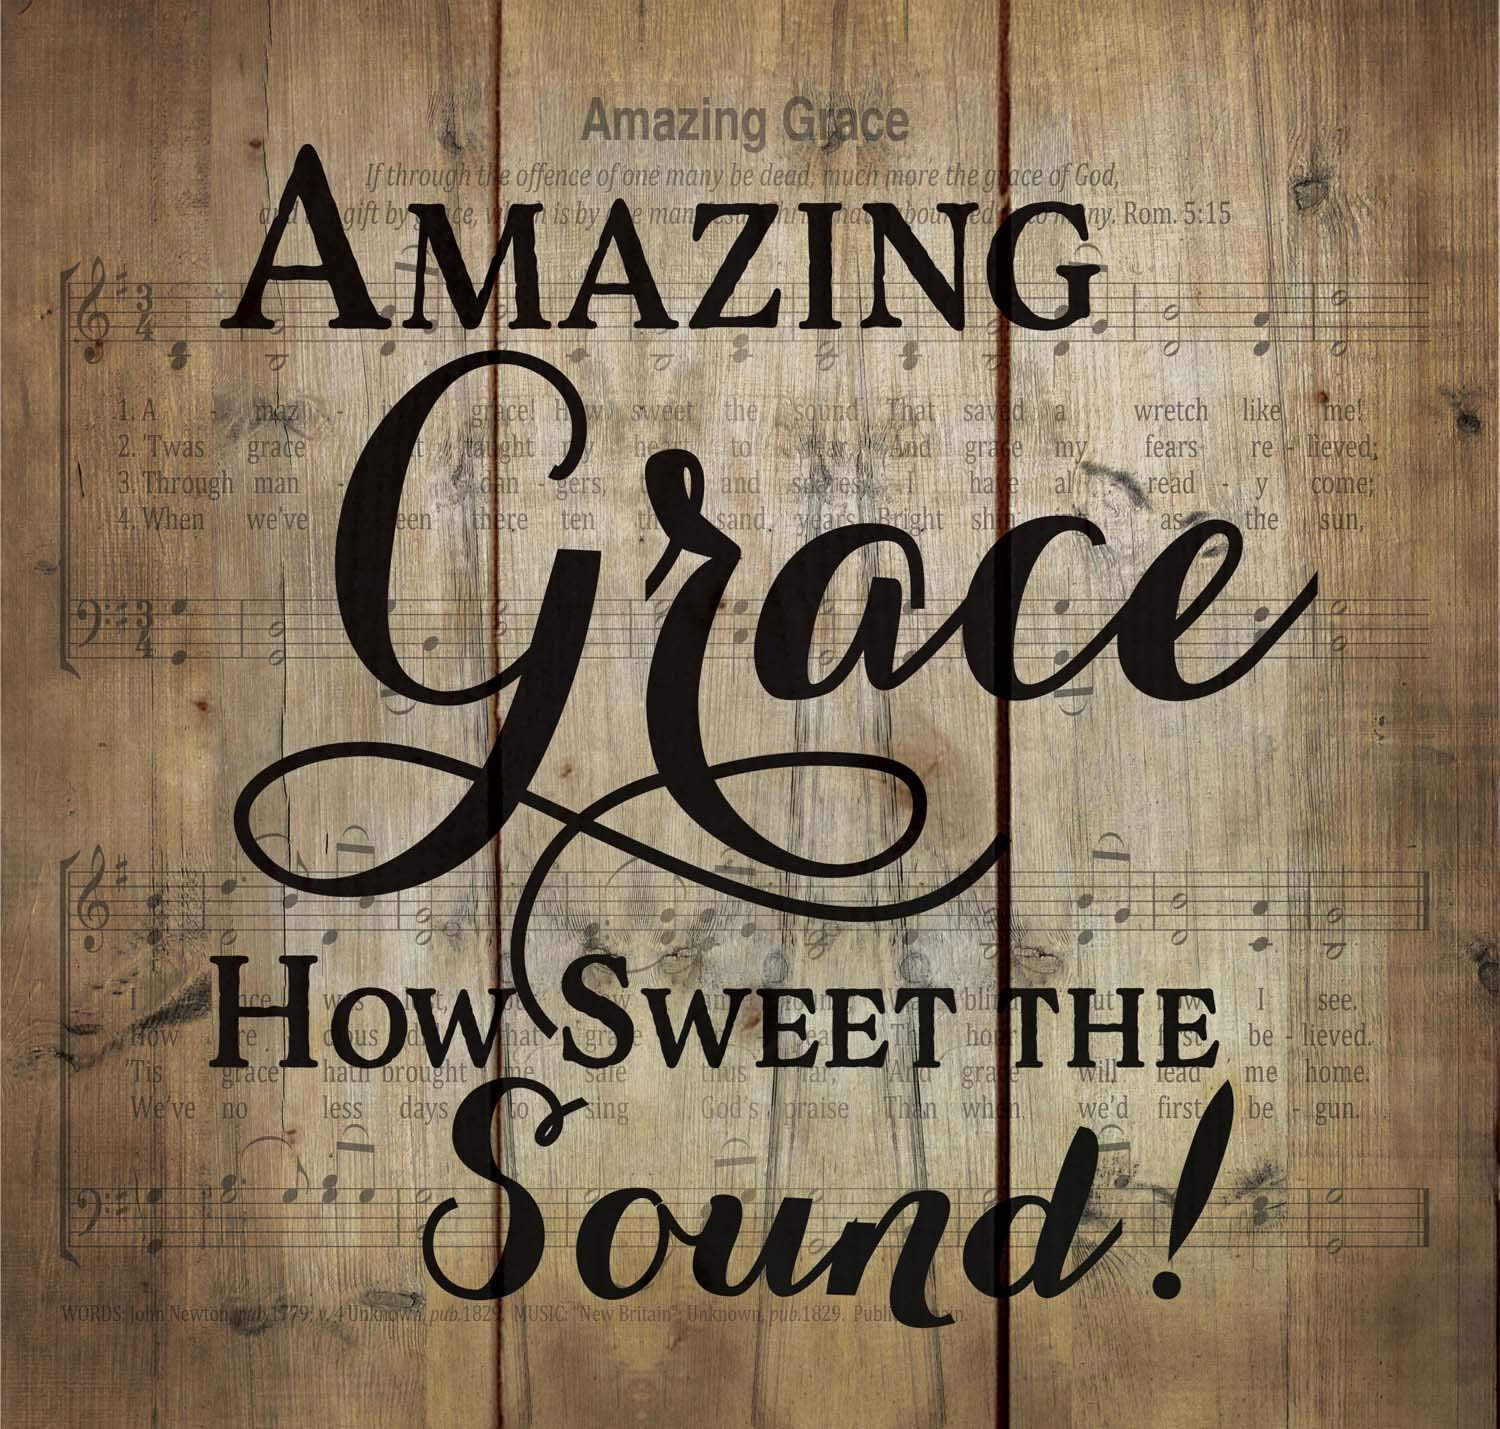 Amazing Grace: The True Story Behind Amazing Grace